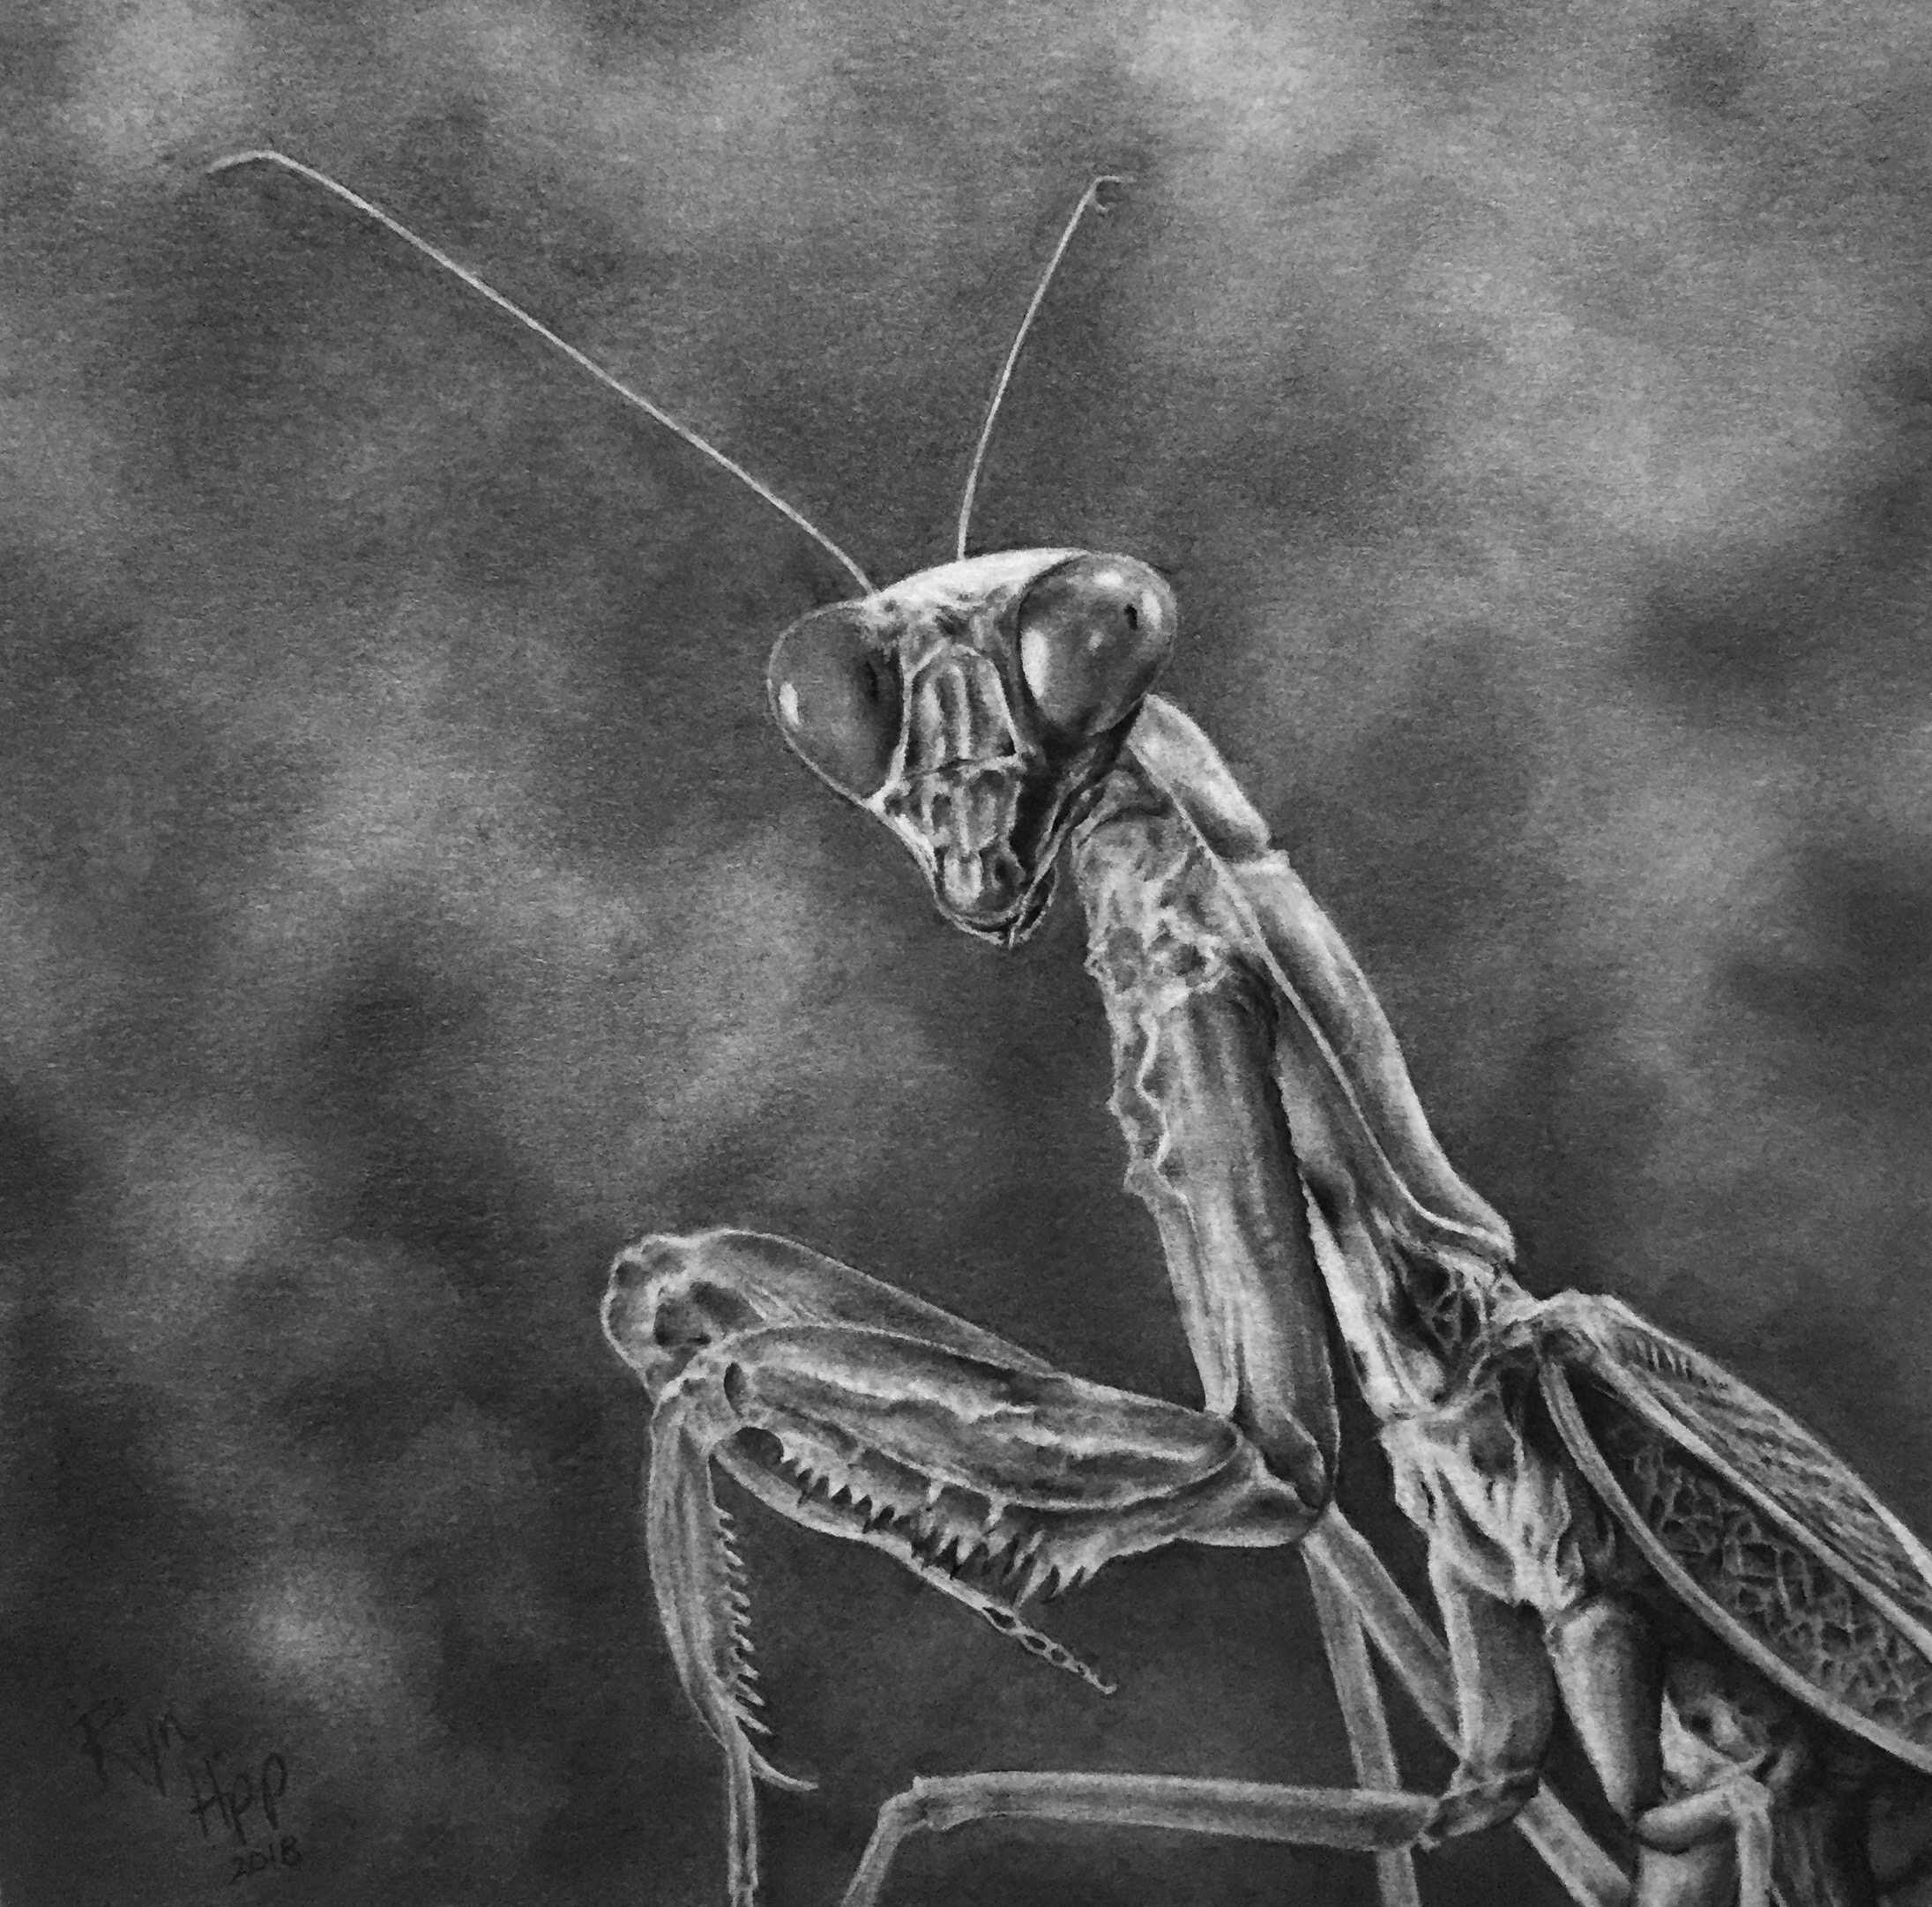 Graphite drawing of a praying mantis.